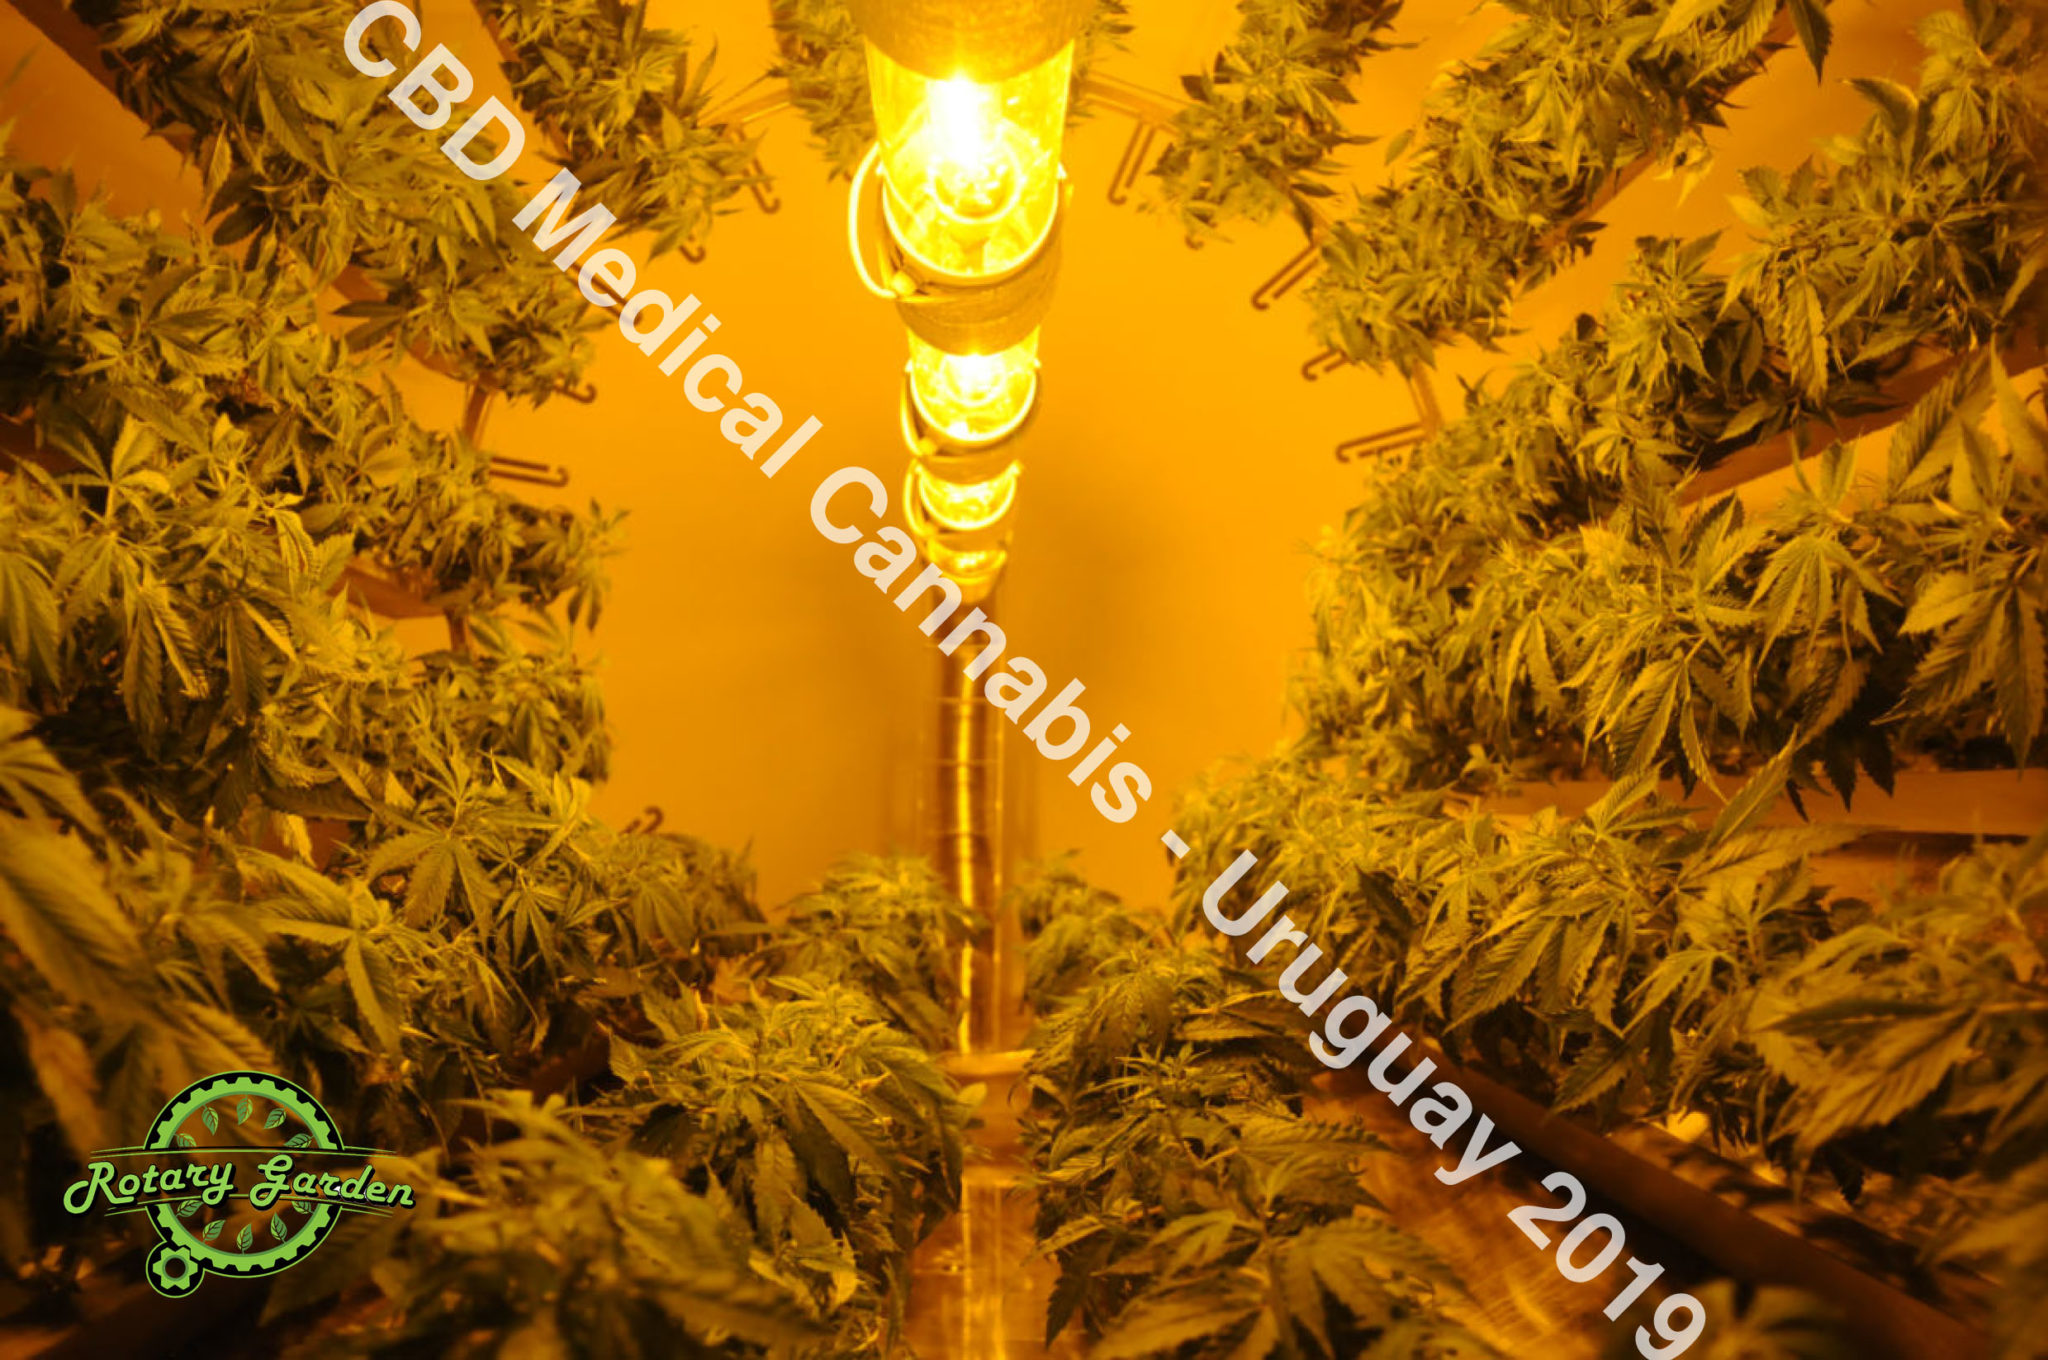 Rotary Garden, CBD Cannabis Medicinal, research project, Uruguay 2019